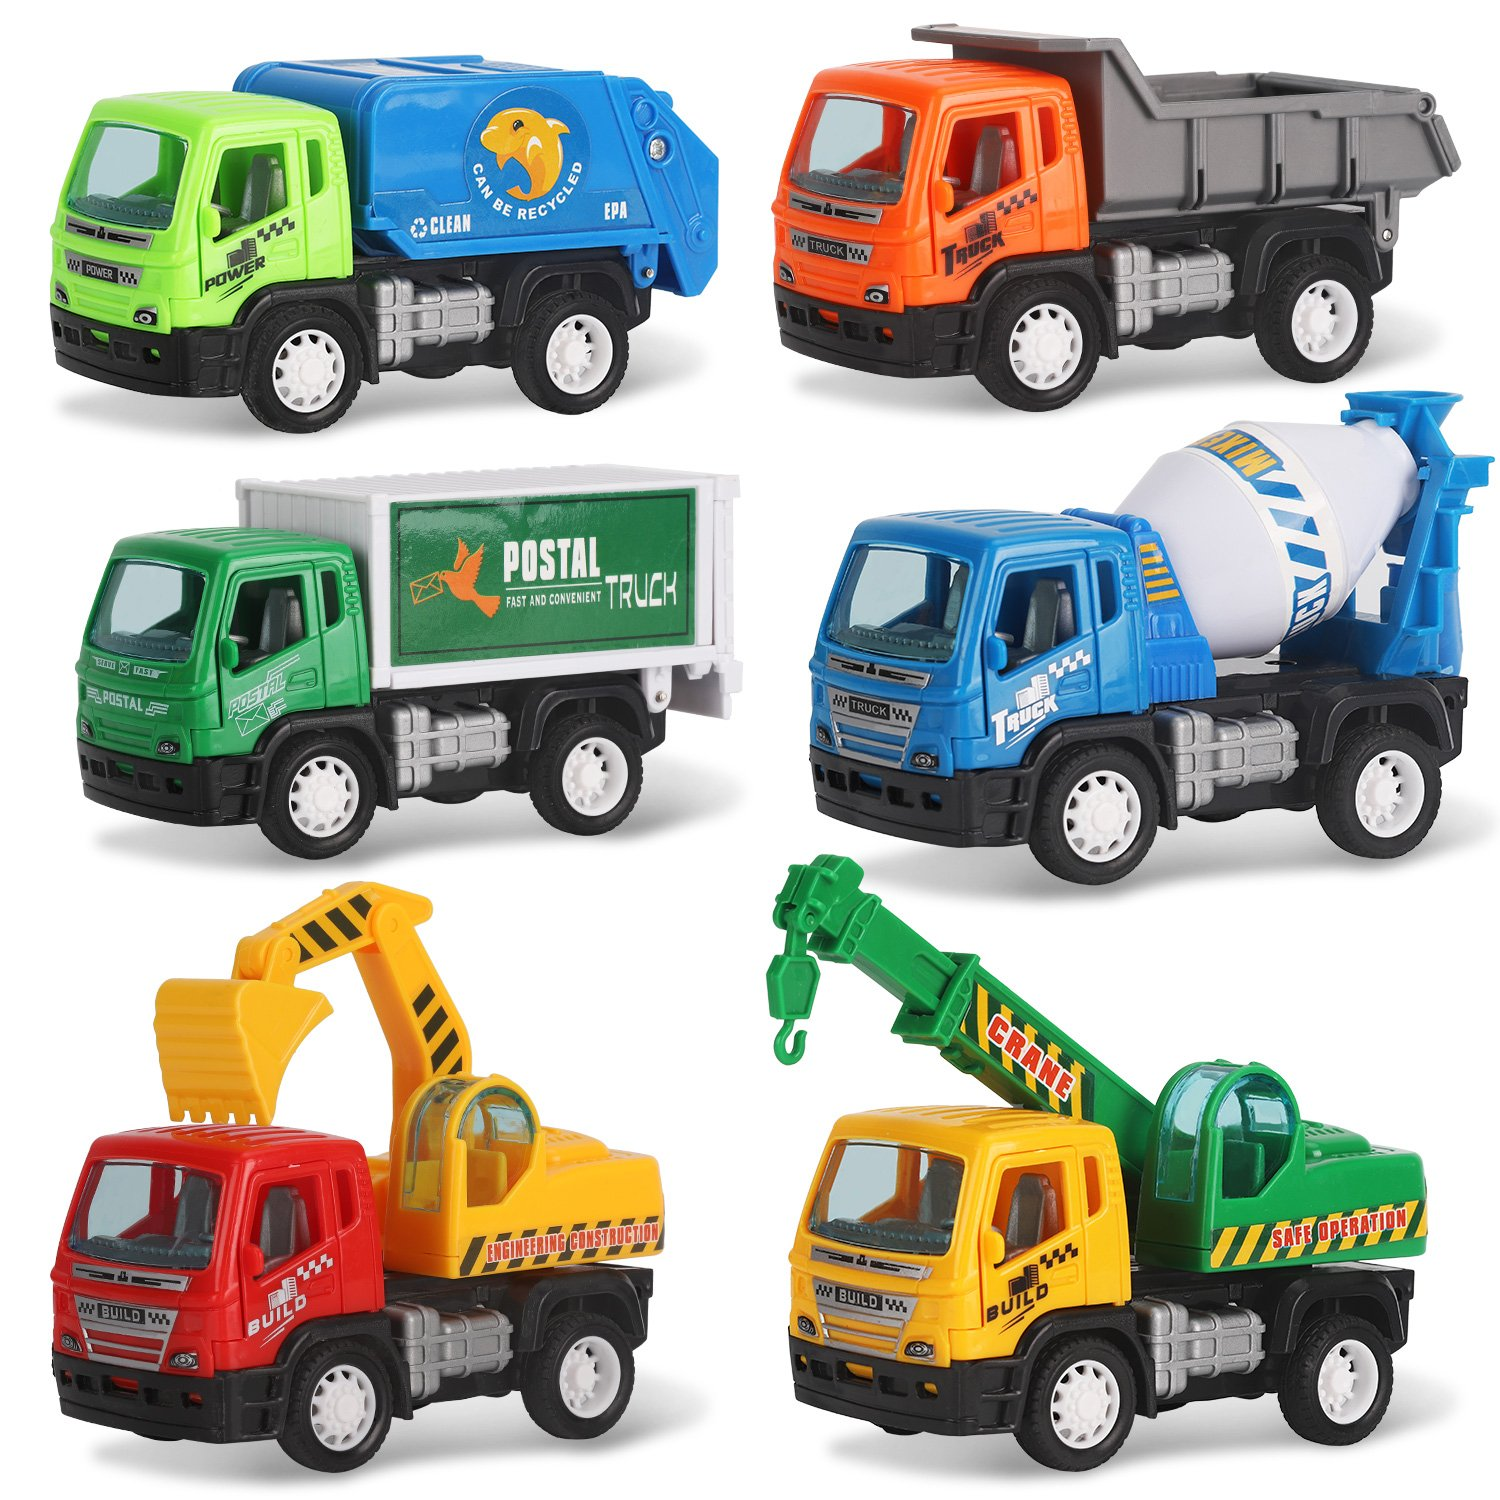 Liberty Imports Set of 6 Pullback City Builder Construction Vehicles for Kids - Dump Truck, Cement Mixer, Garbage Truck, Excavator, Crane, Postal Truck